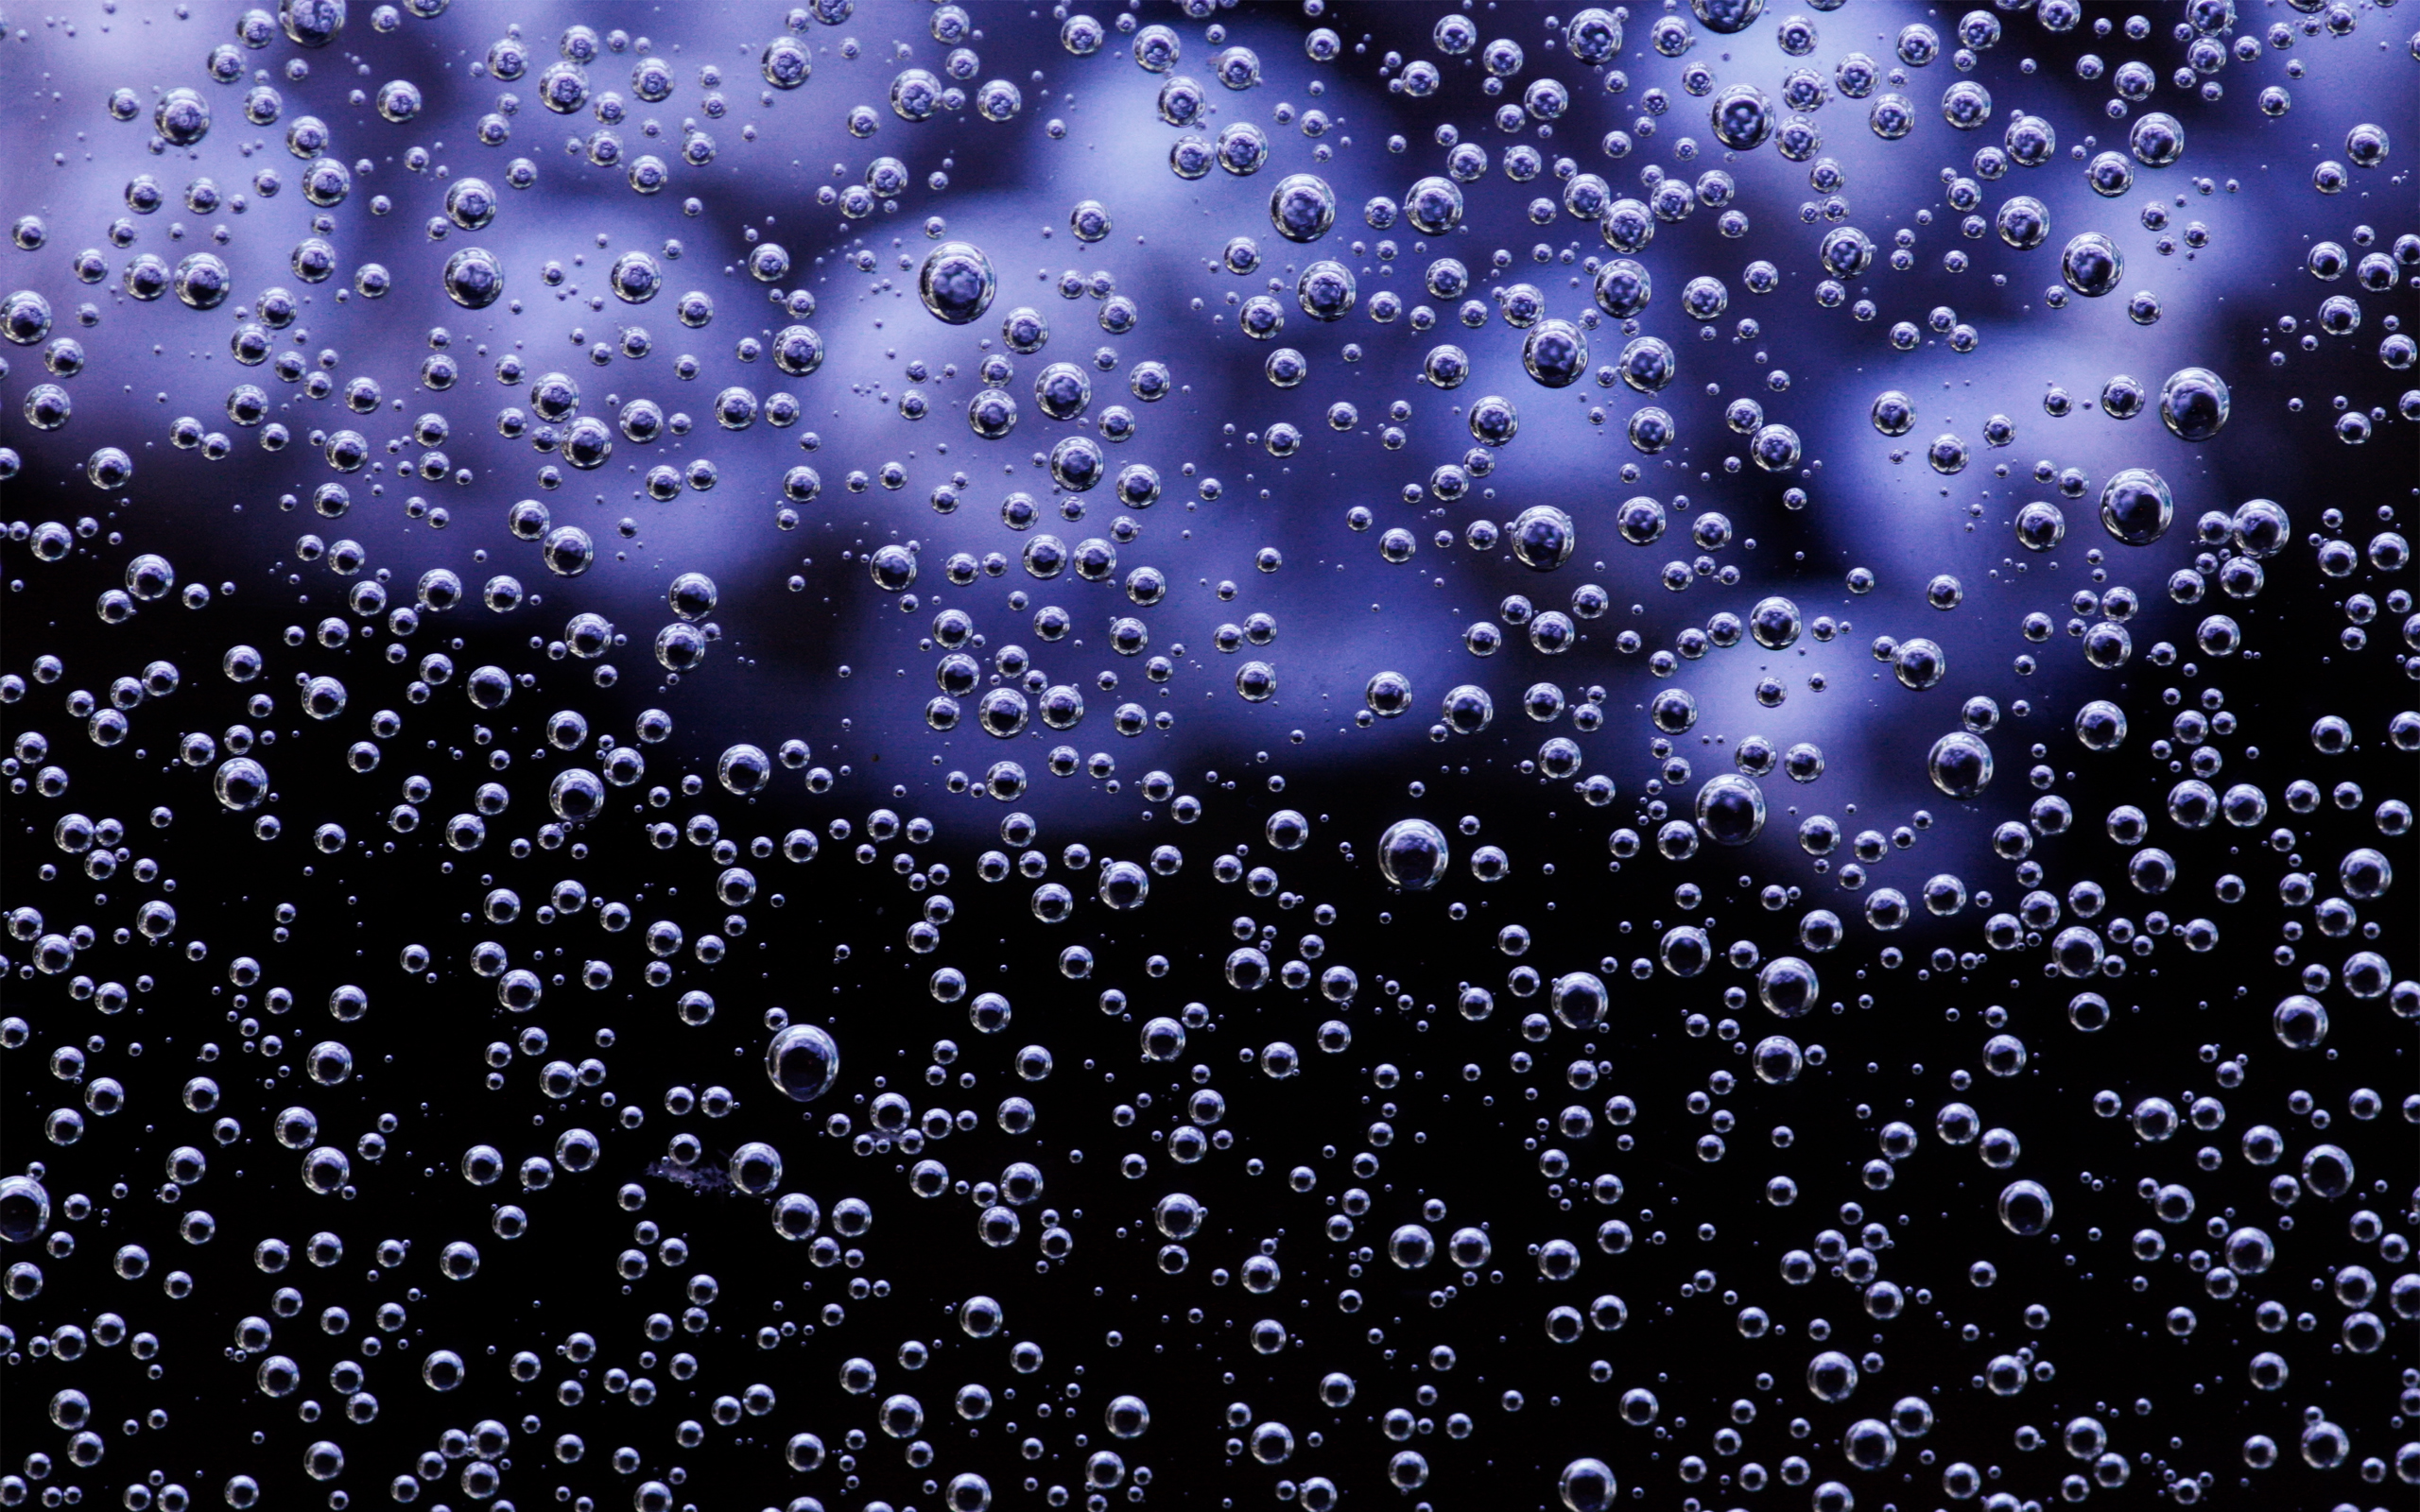 bubbles desktop 1024x768 - photo #14